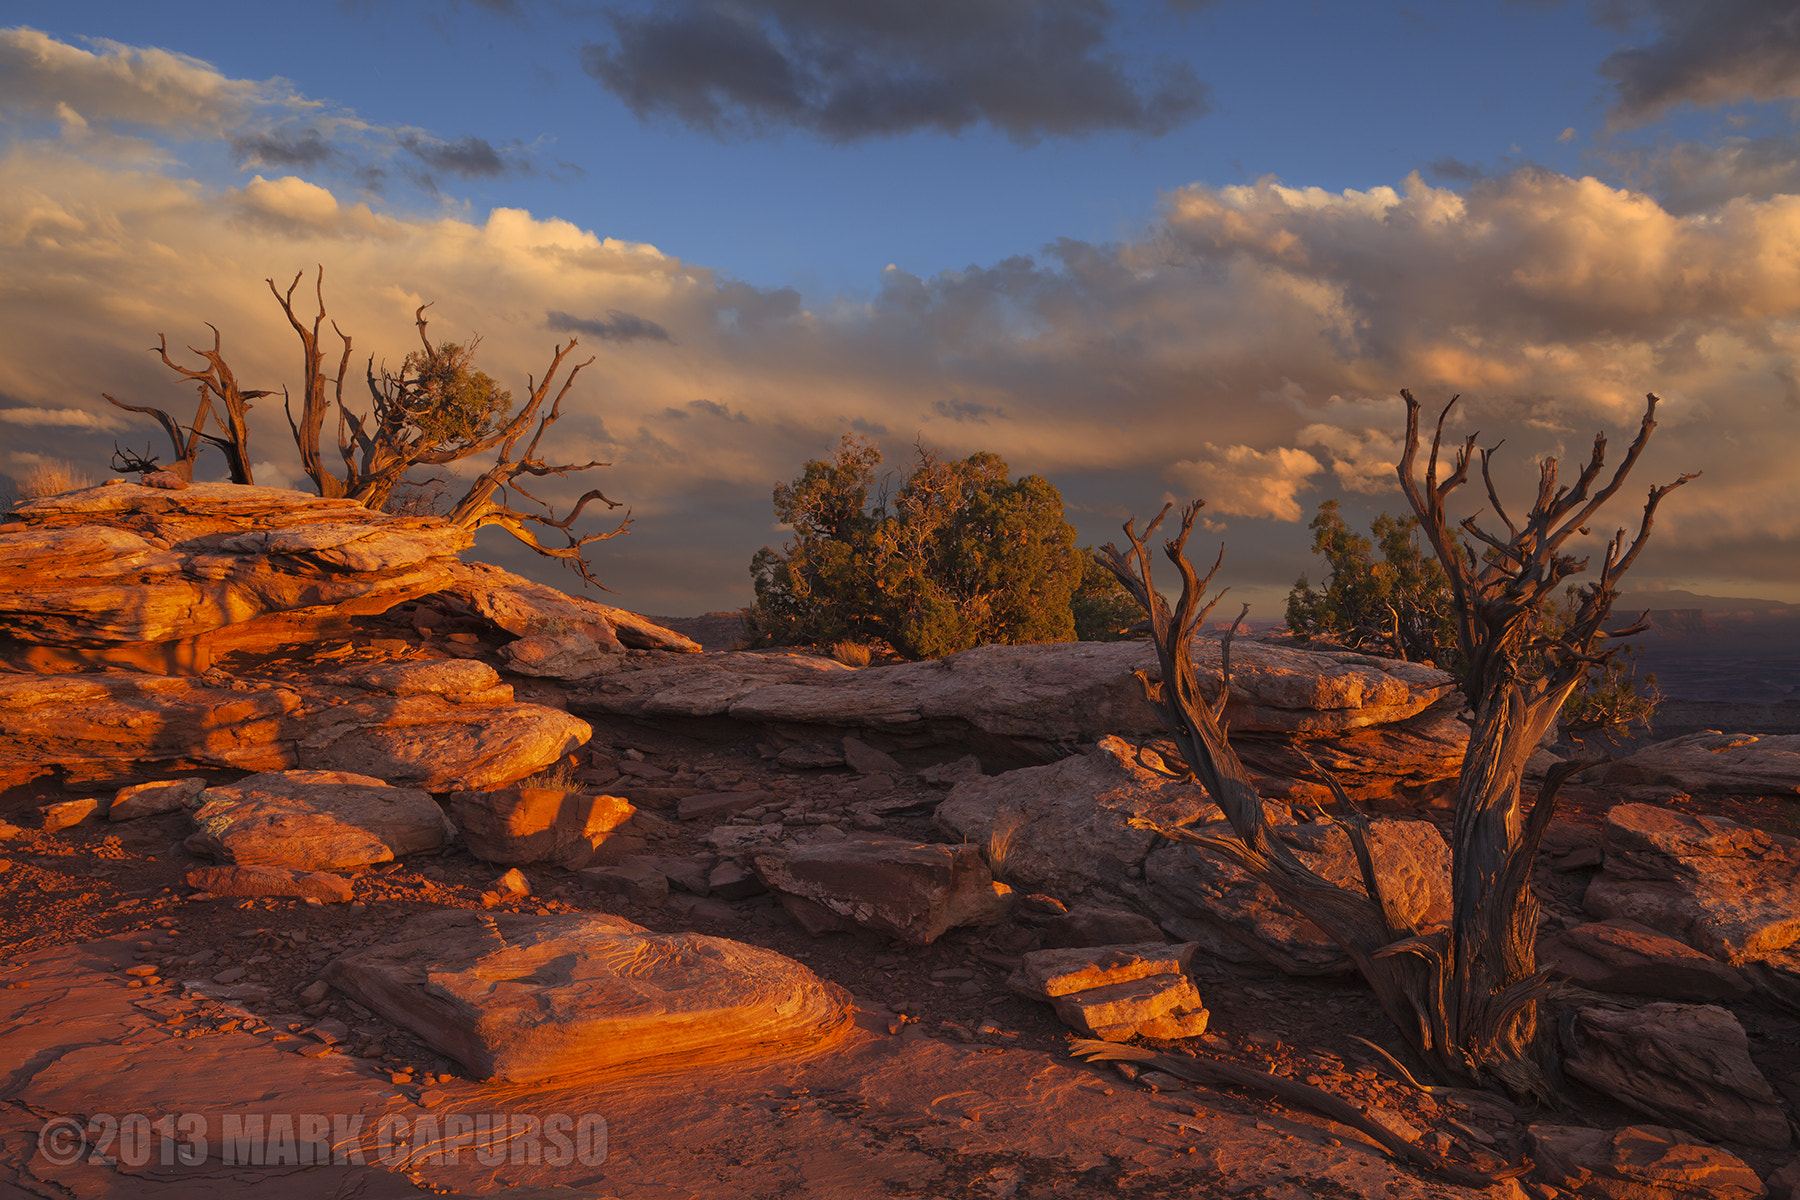 Photograph Spirit of Junipers Past by Mark Capurso on 500px